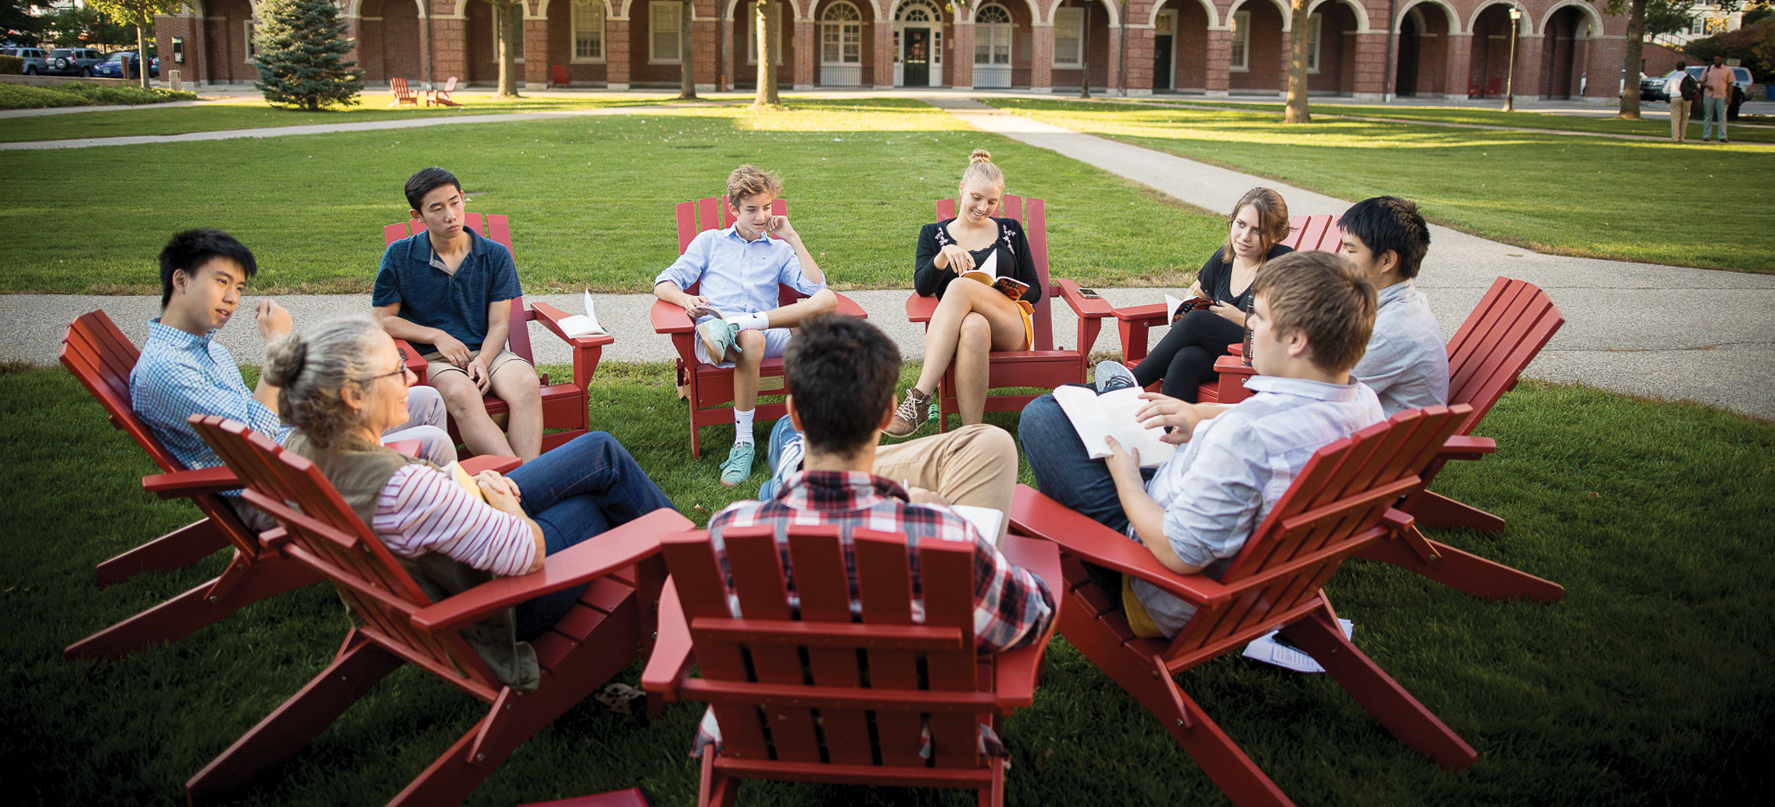 Phillips Exeter Academy students sitting in Adirondack chairs on the quad.